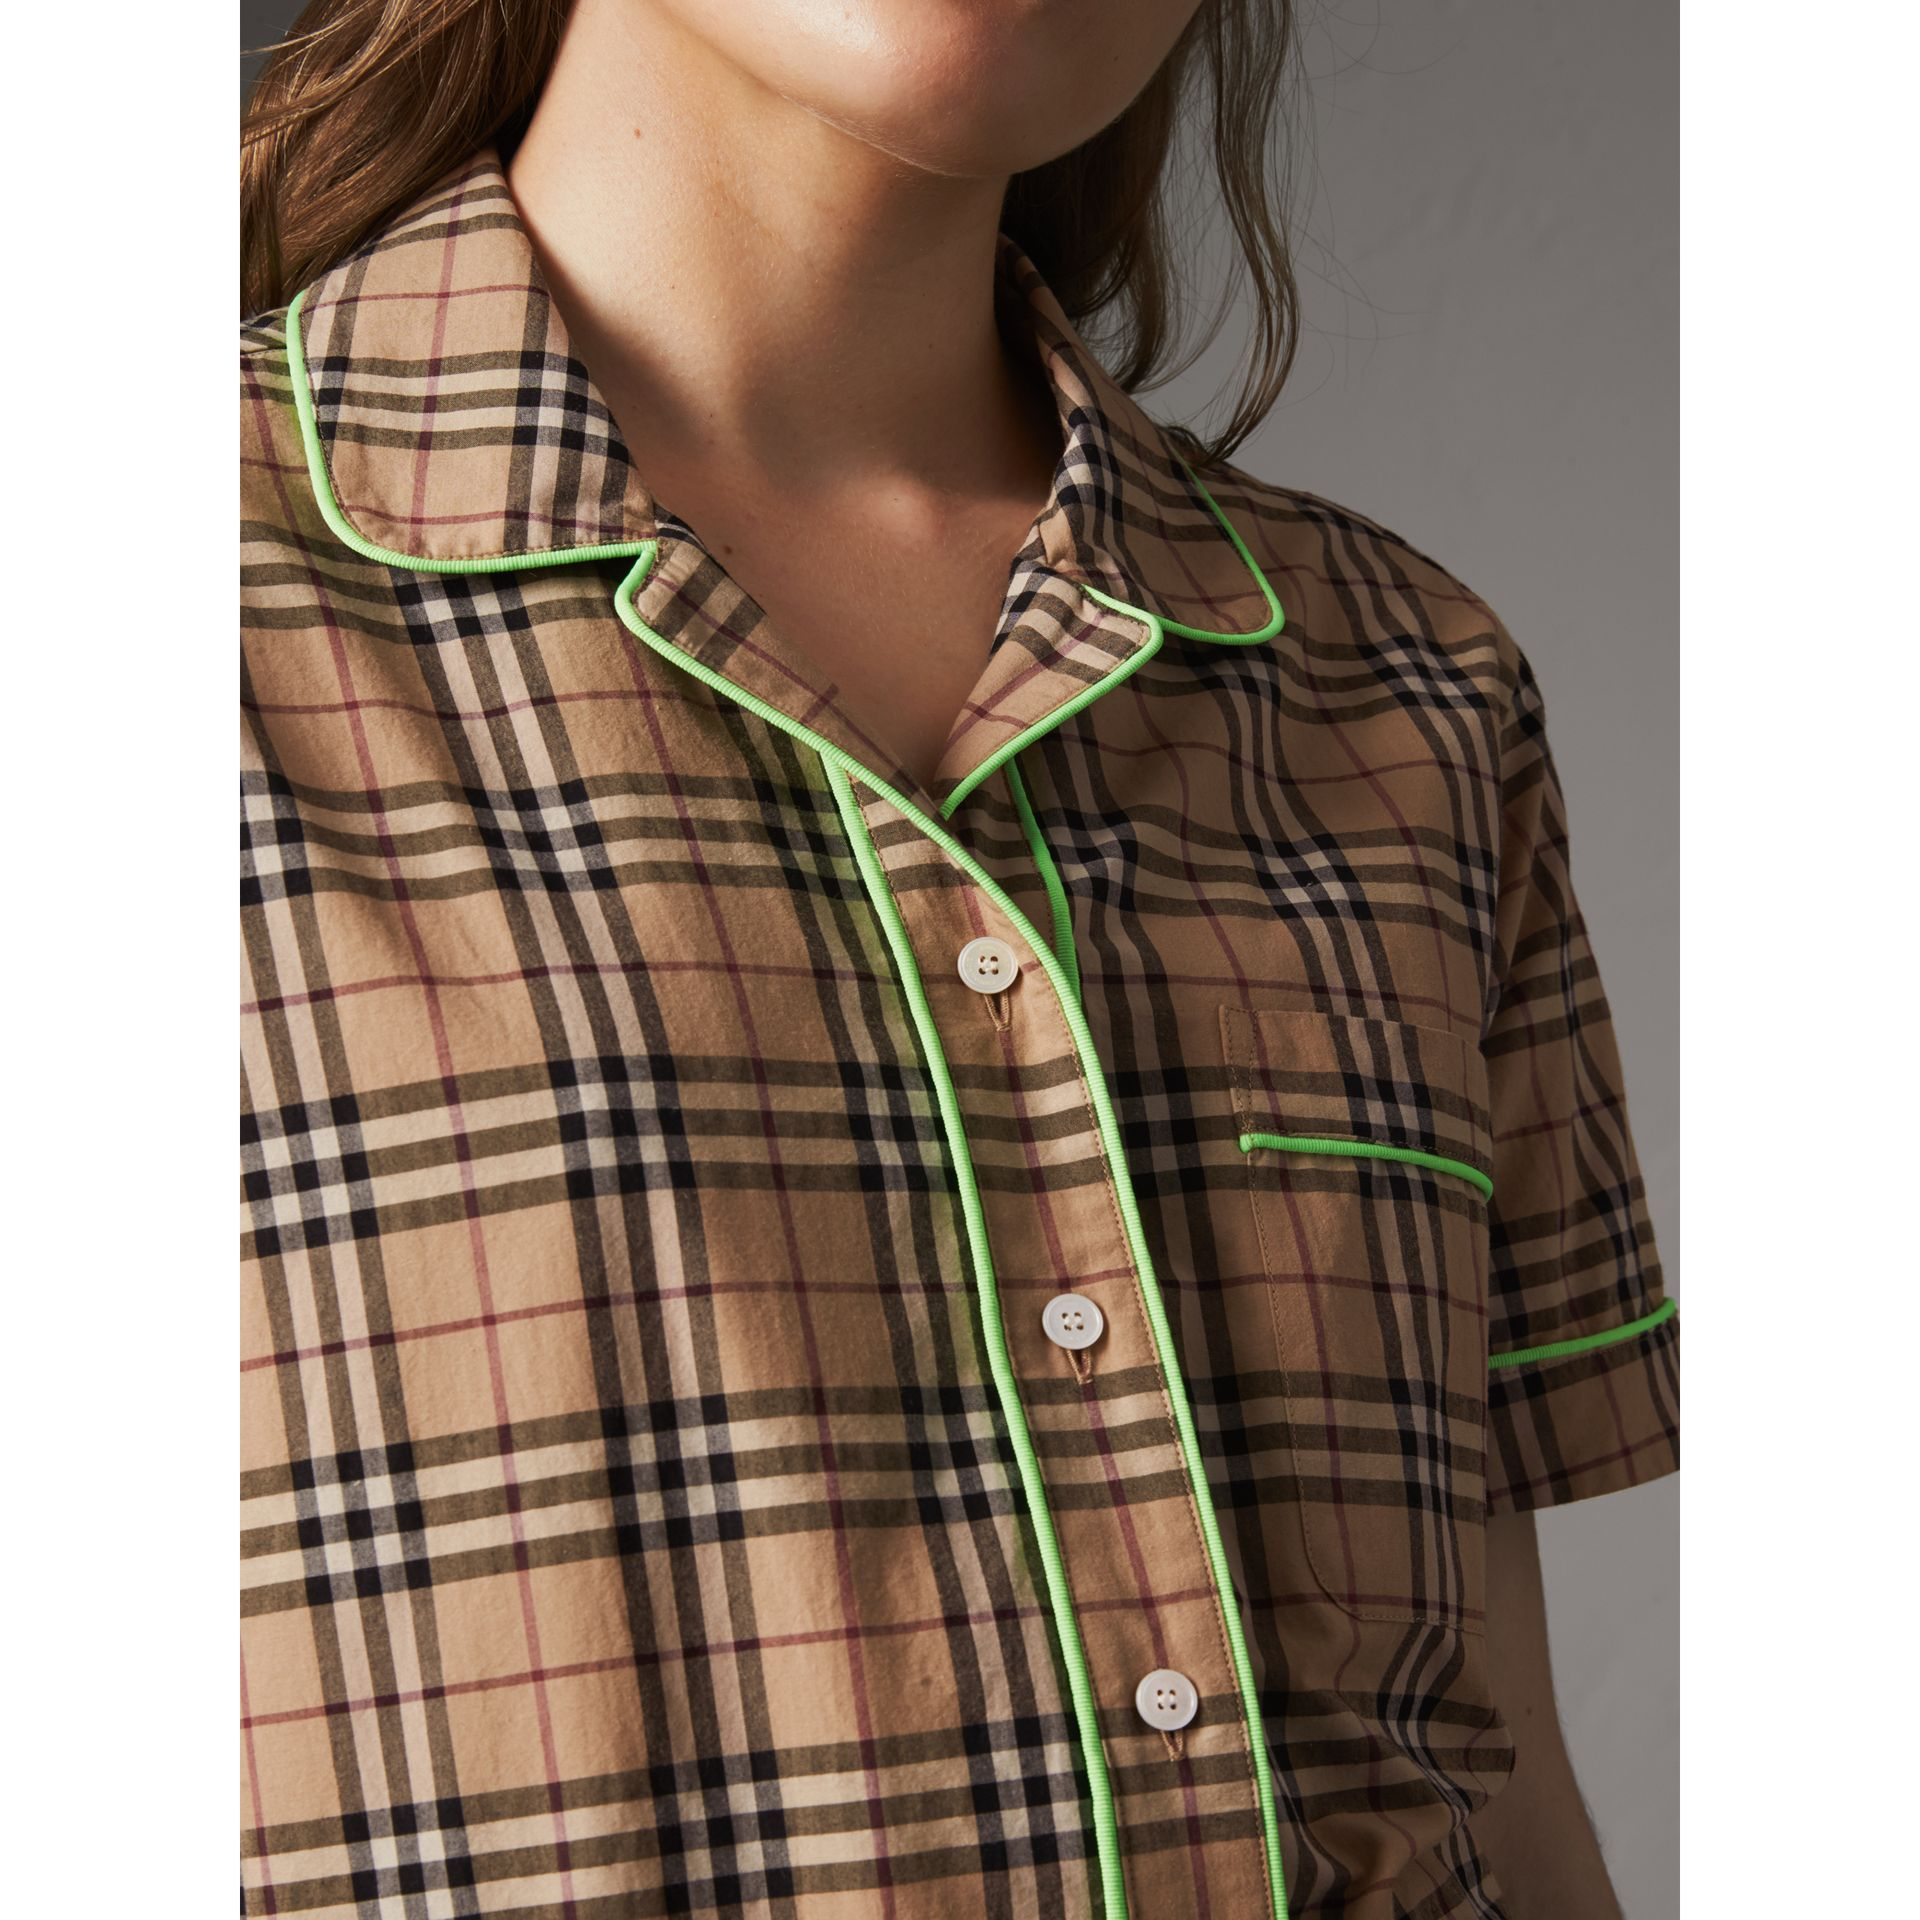 Contrast Piping Check Cotton Pyjama-style Shirt in Camel - Women | Burberry Australia - gallery image 1